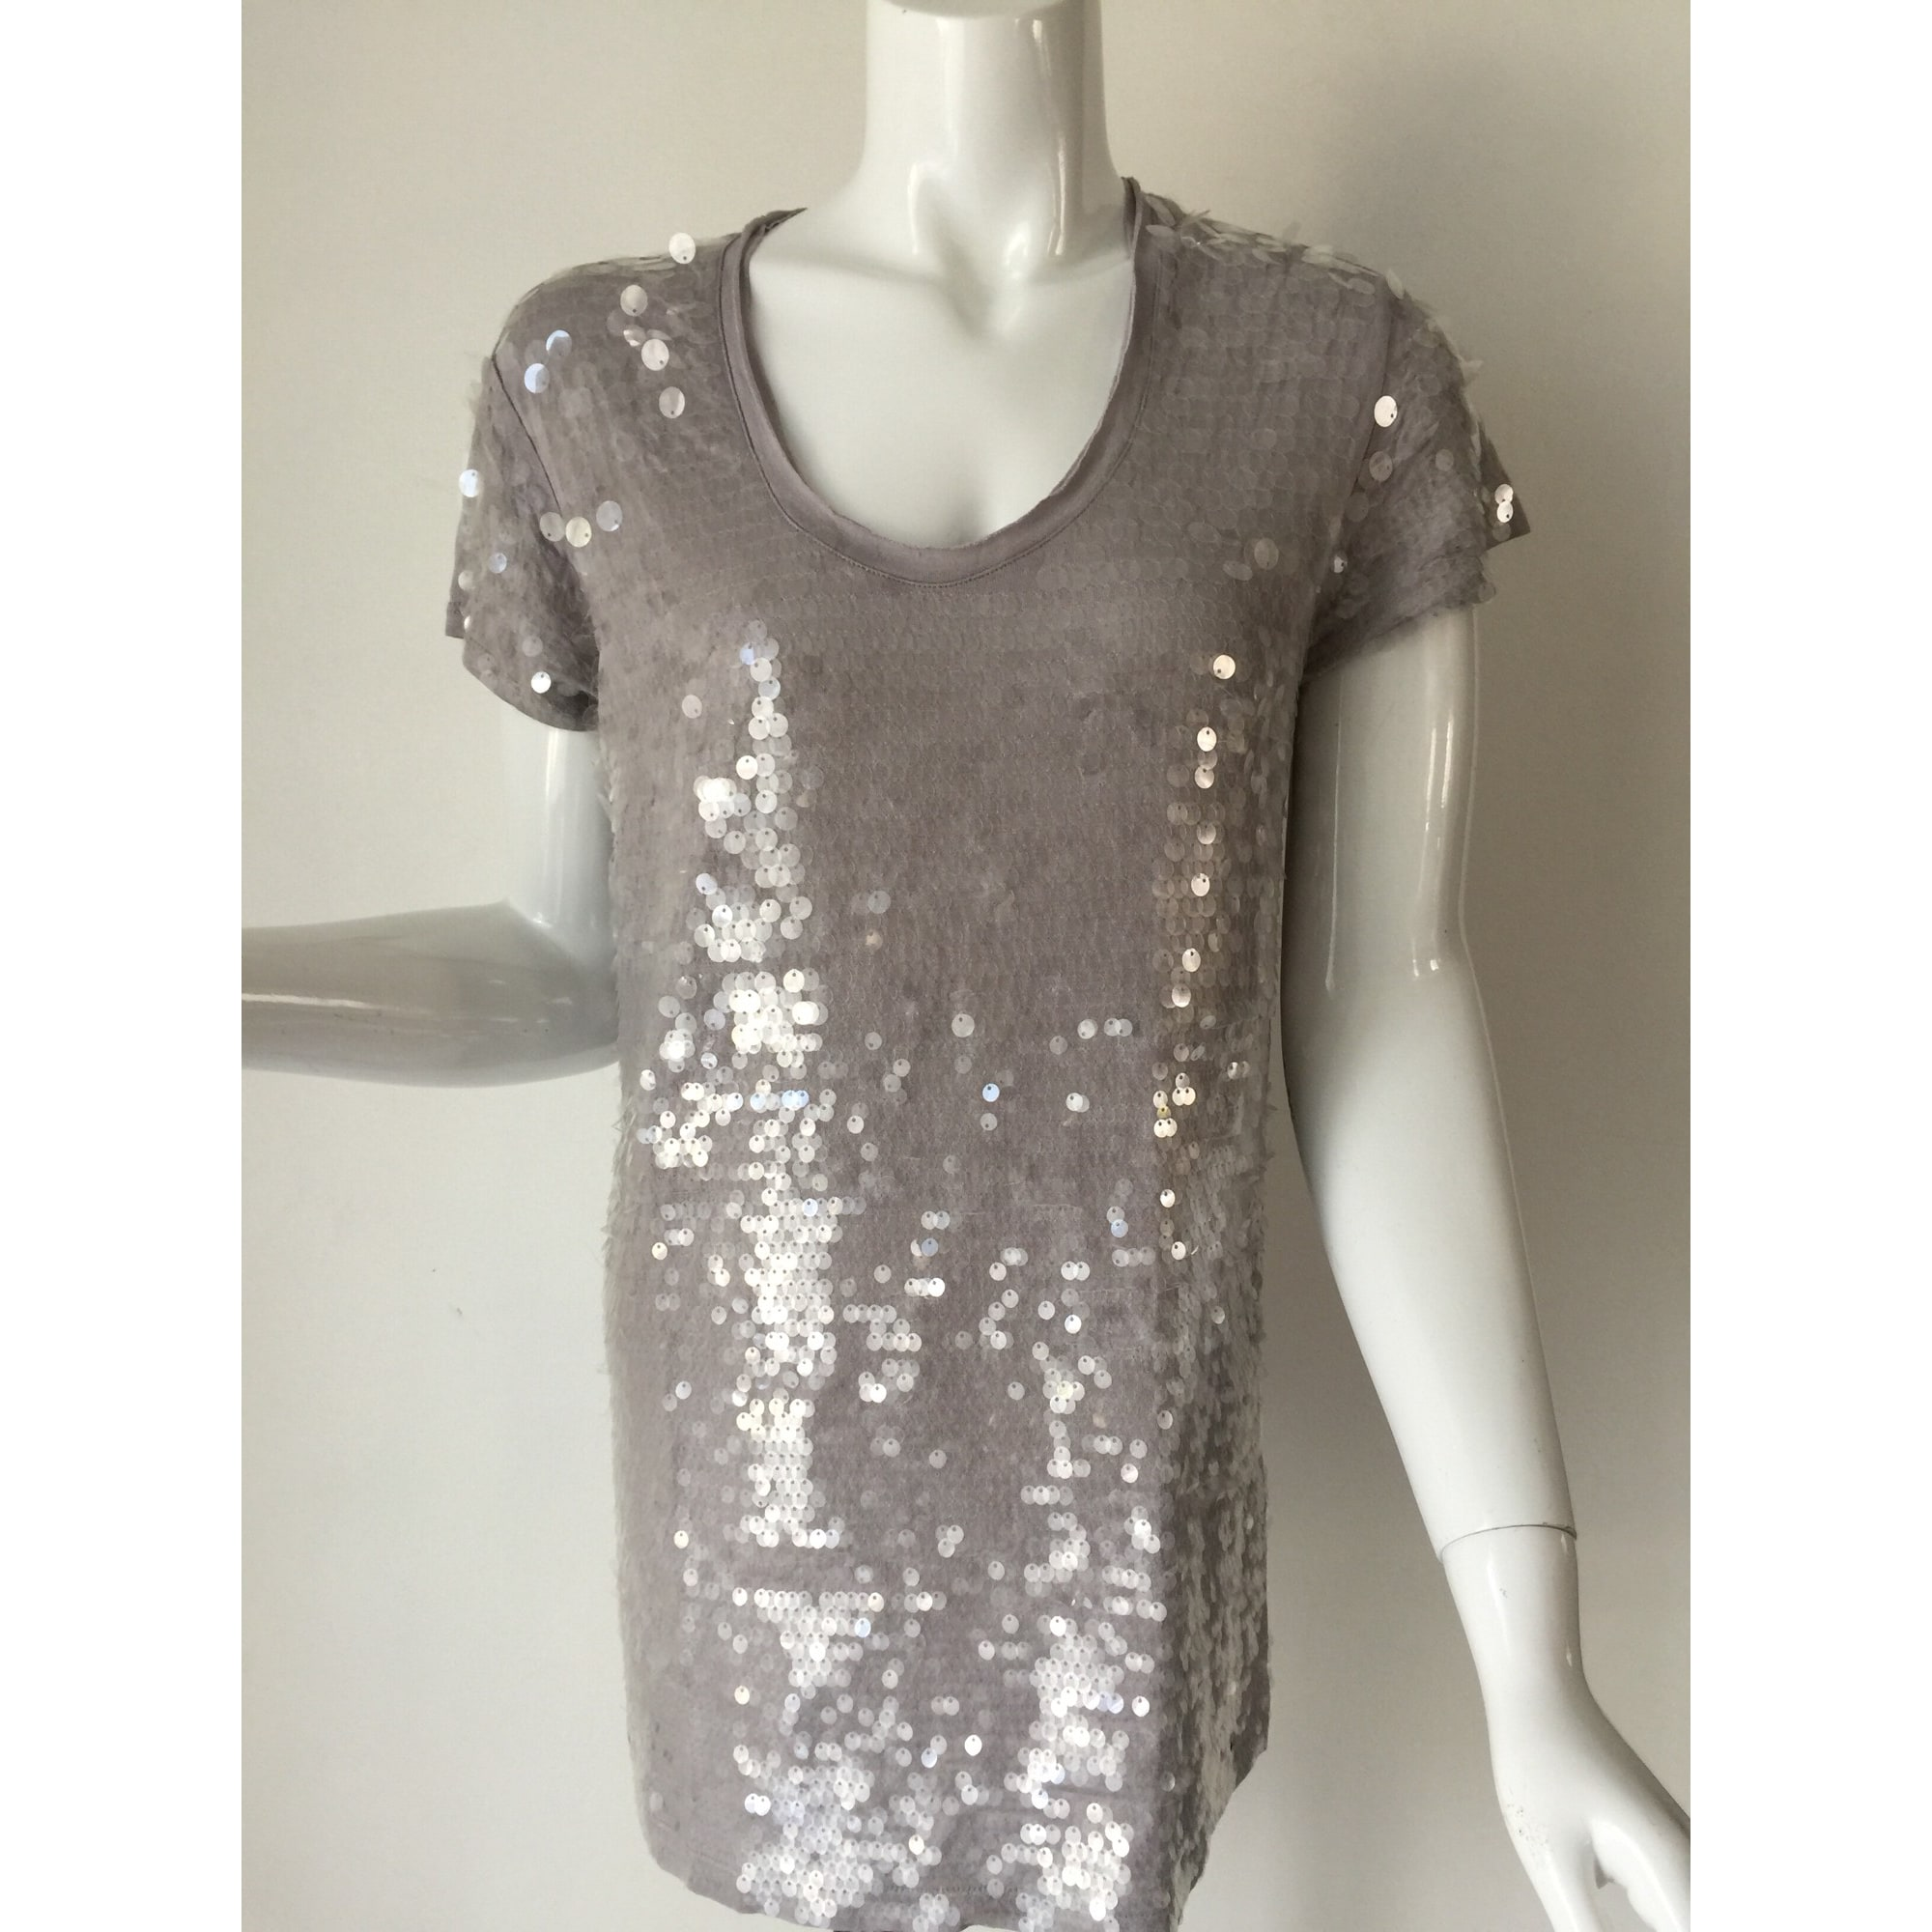 Top, tee-shirt GUESS Gris, anthracite